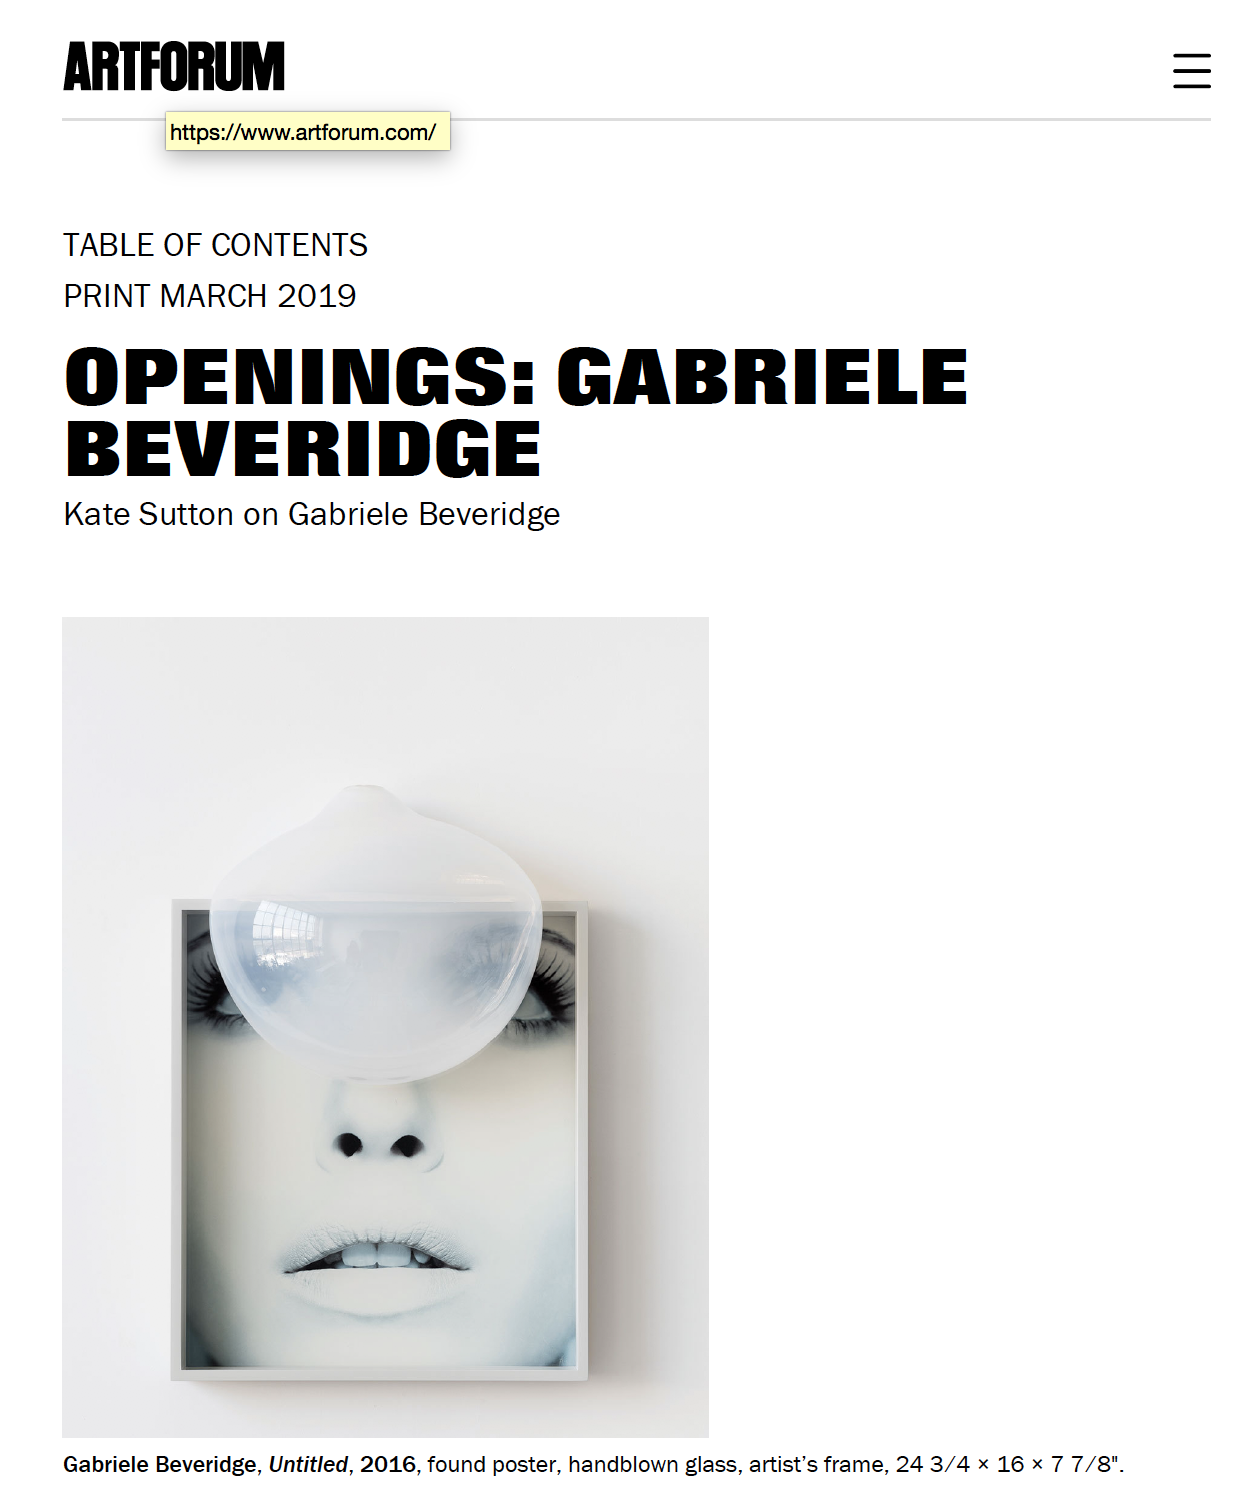 OPENINGS: GABRIELE BEVERIDGE